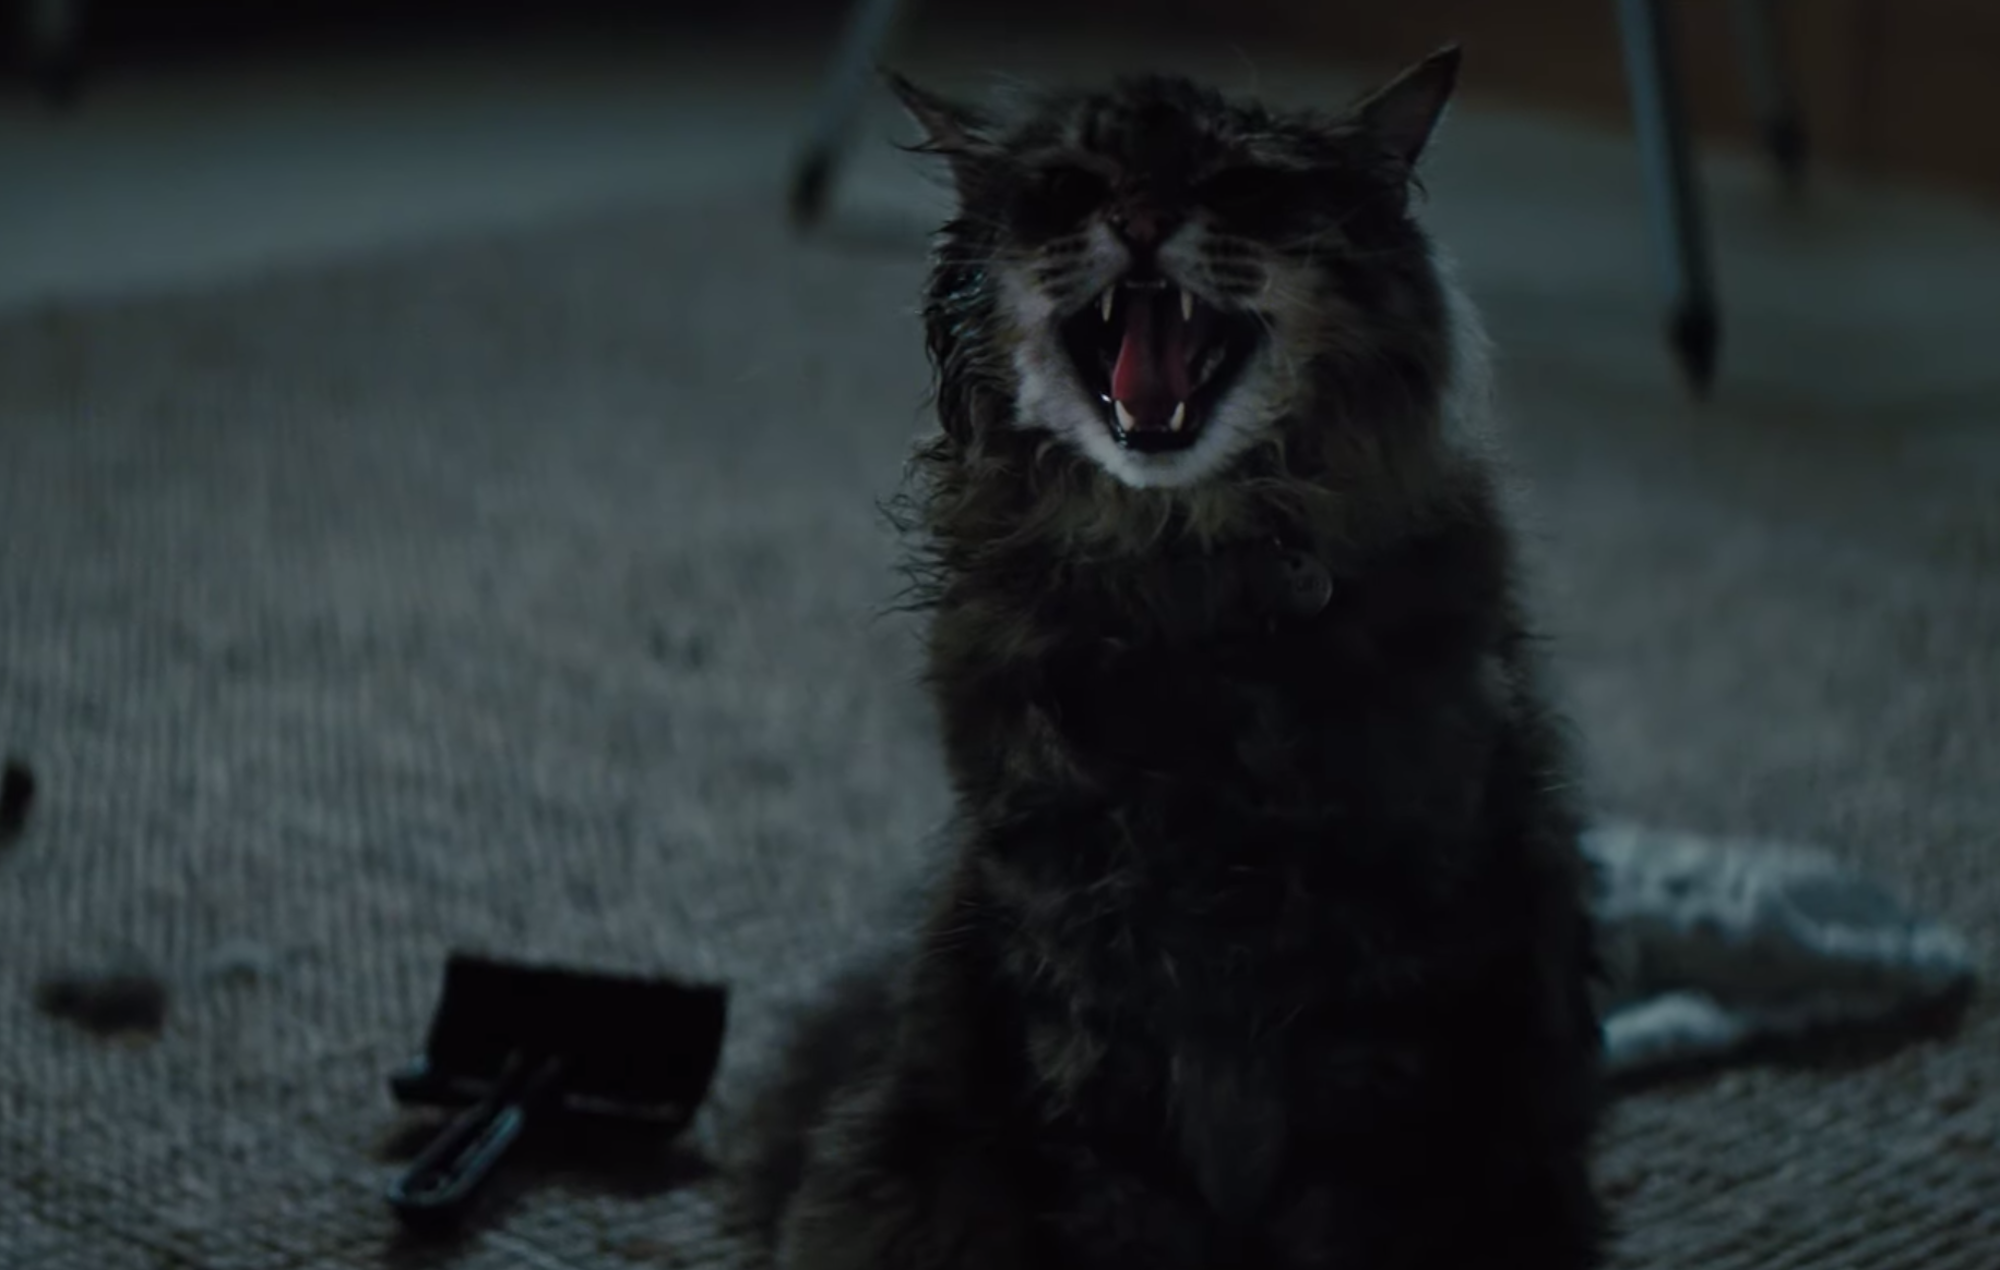 Lanzan el perturbador trailer final de Pet Sematary